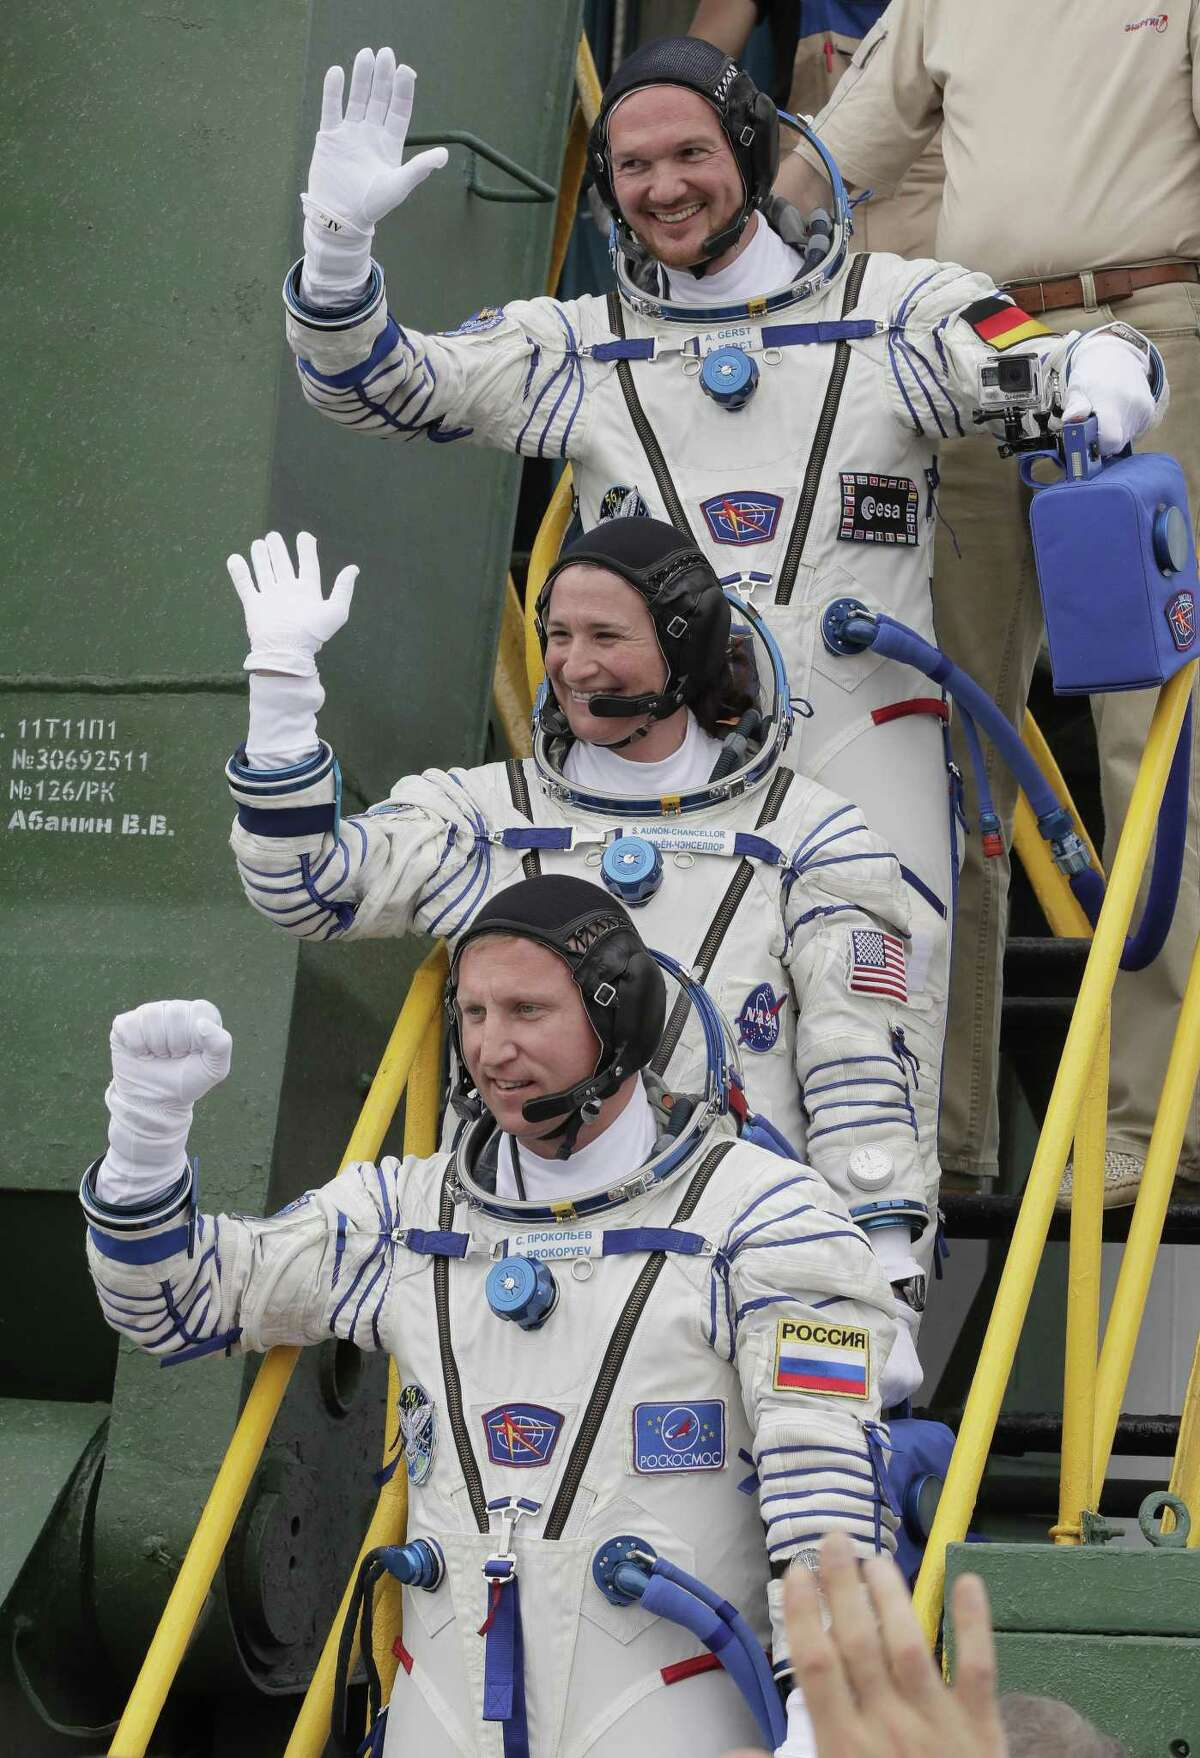 U.S. astronaut Serena Aunon-Chancellor, center, Russian cosmonaut Sergey Prokopyev and German astronaut Alexander Gerst, top, wave as they board prior to their June 2018 launch to the International Space Station. Astronauts scrambled Thursday, Aug. 30 to patch a tiny hole in a Russian capsule that was allowing air to leak from the space station.